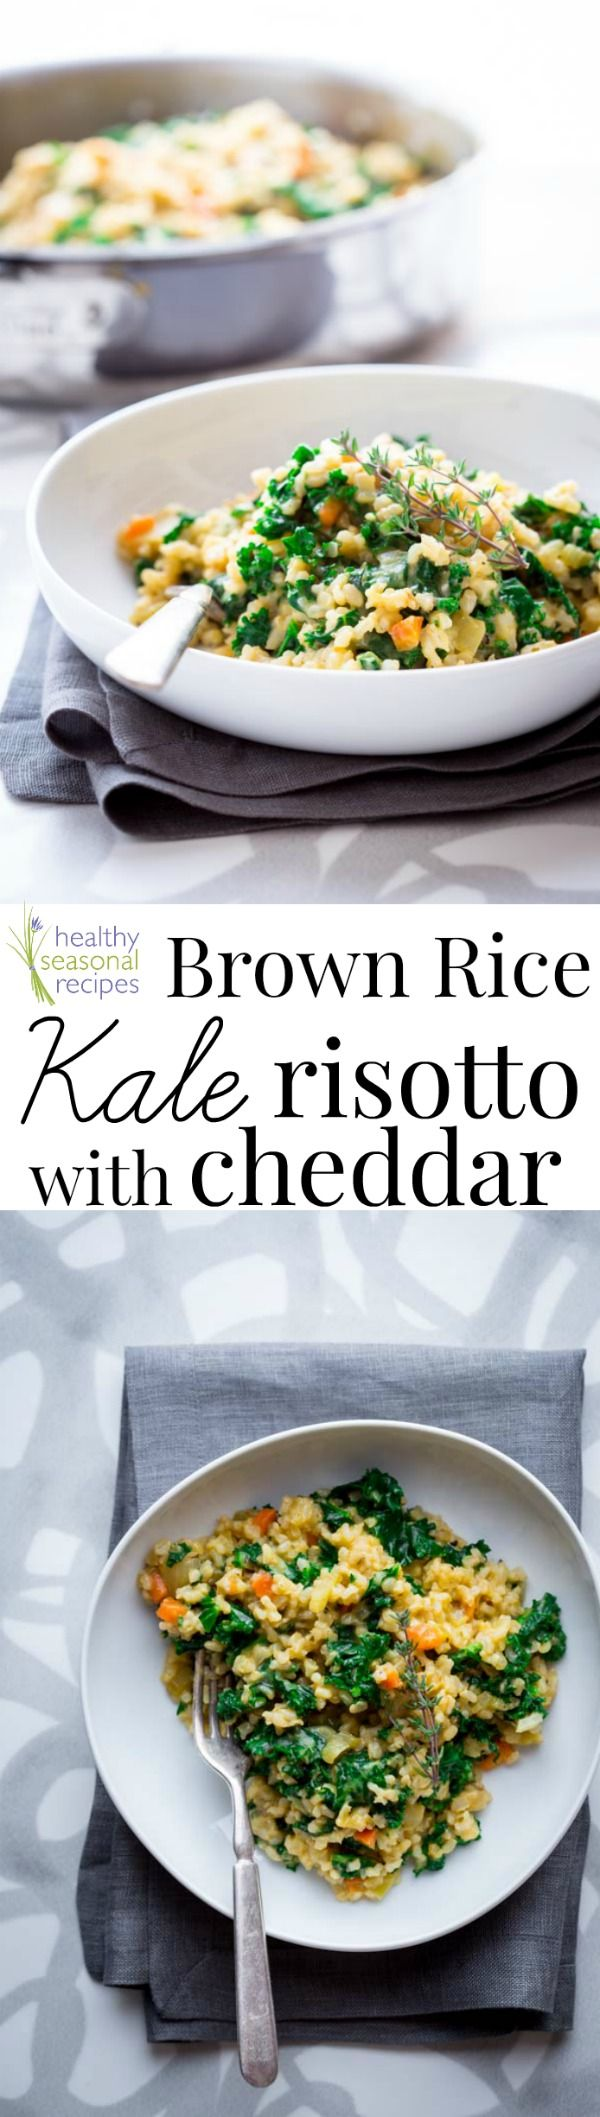 Blog post at Healthy Seasonal Recipes : I'm going to talk about this yummy vegetarianBrown Rice Kale Risotto with Cheddar in a second, but first I wanted to tell you about the [..]